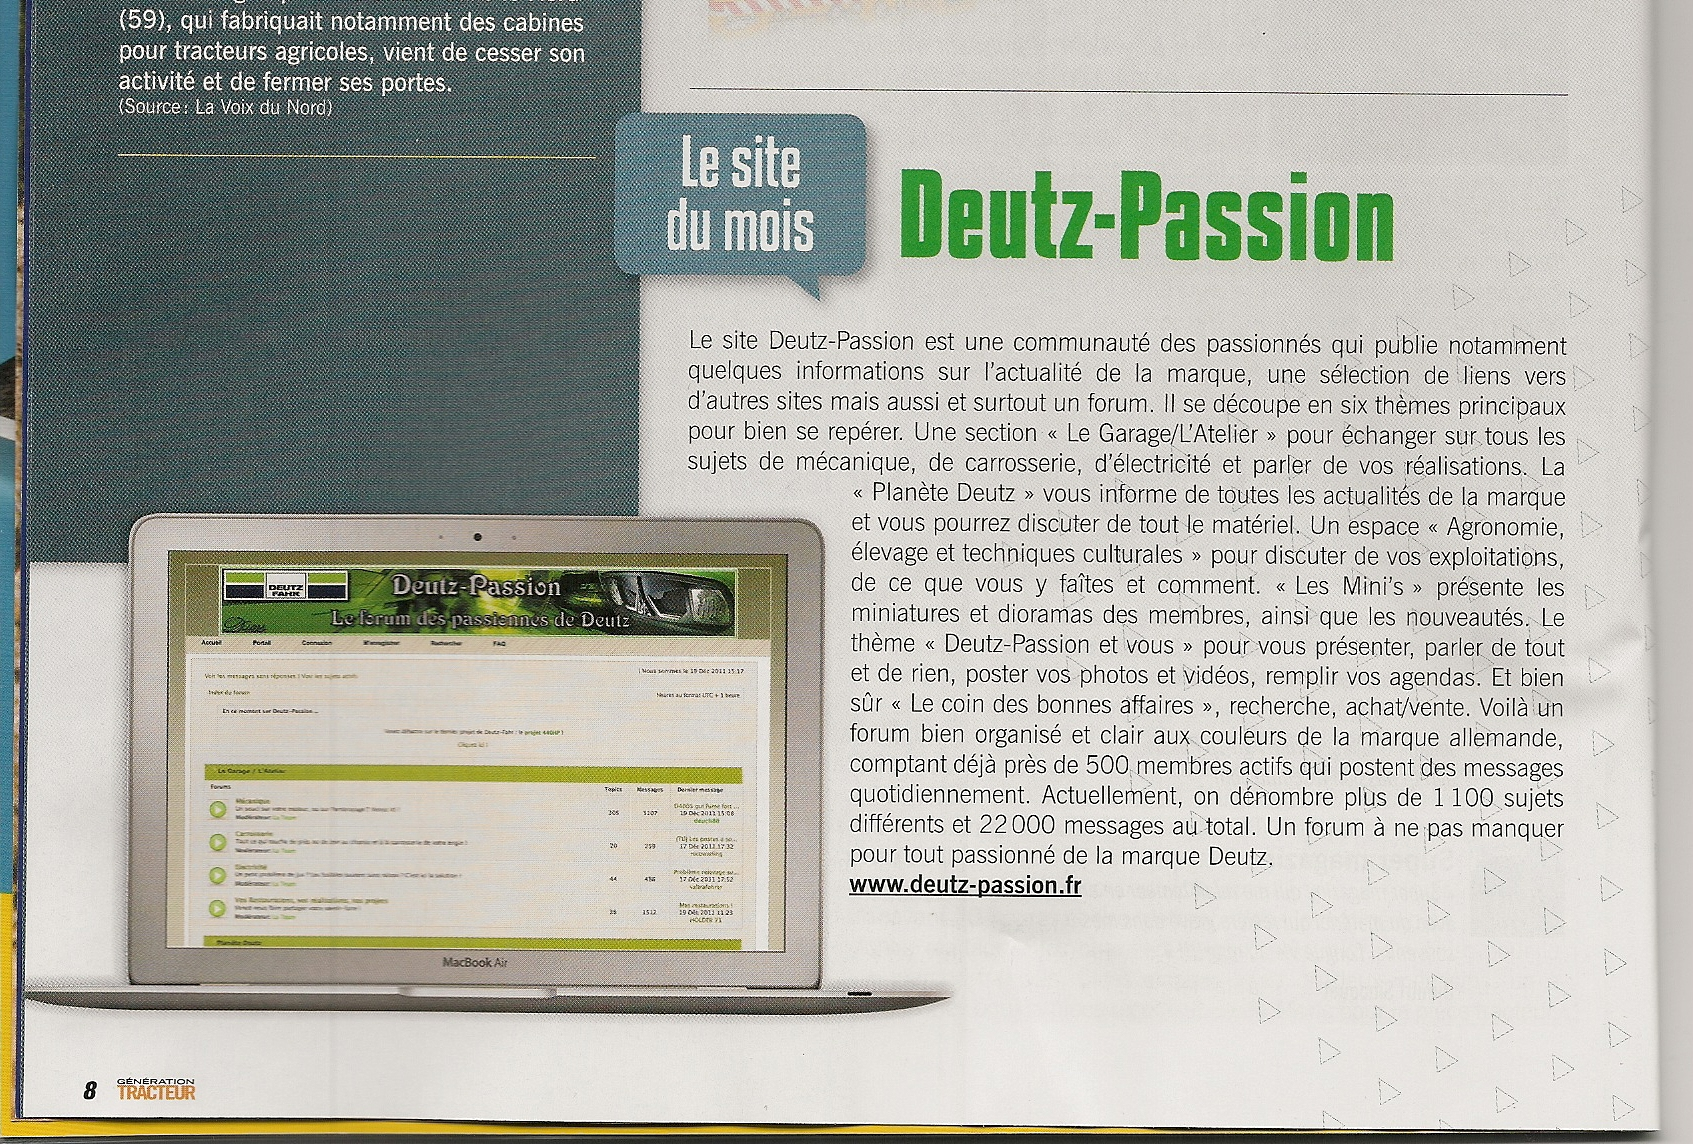 generation_tracteur_deutz-passion0001.jpg